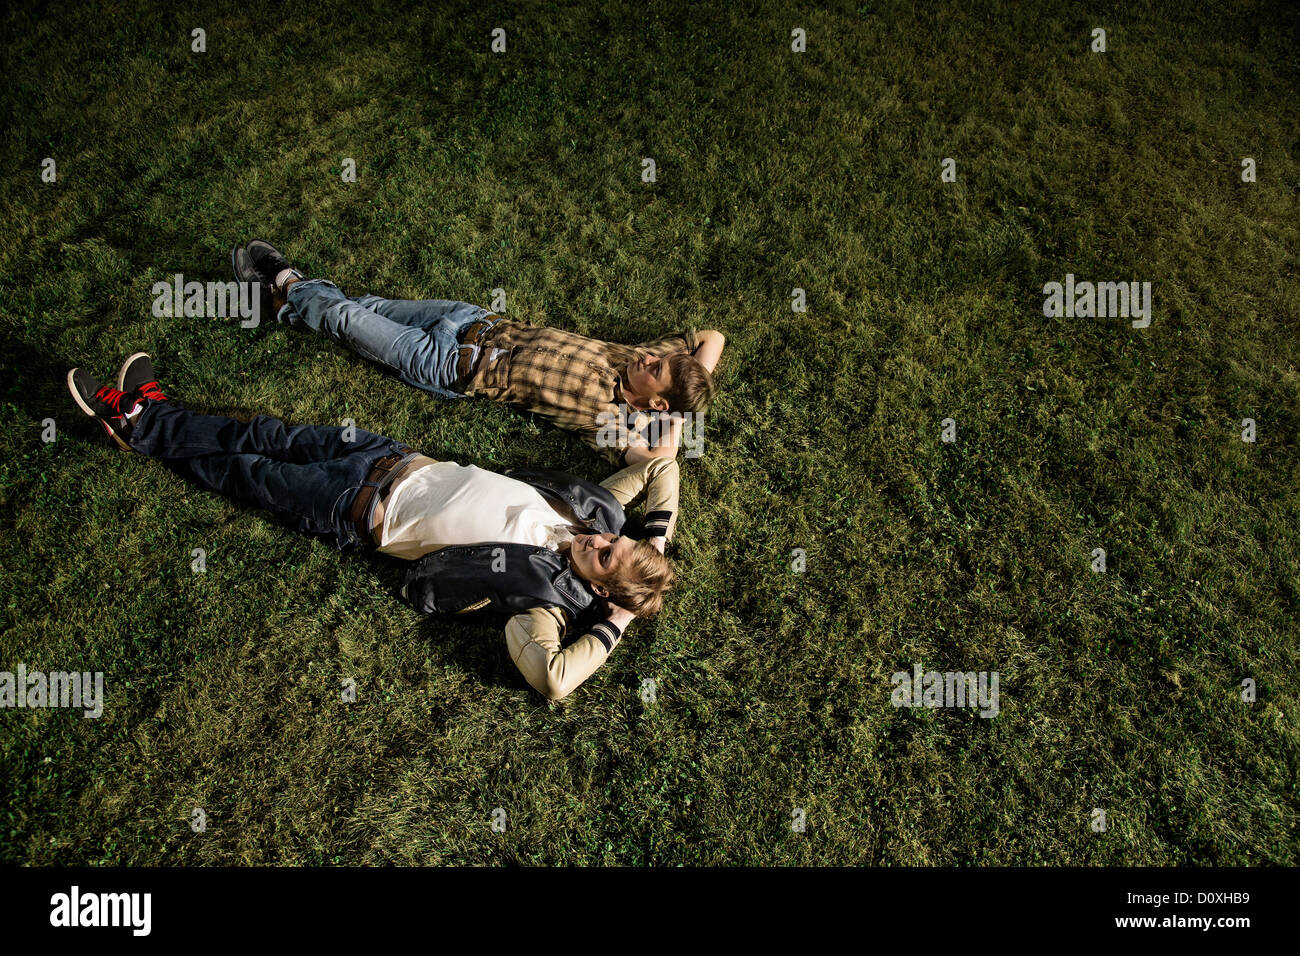 Two young men lying on grass at night, high angle - Stock Image